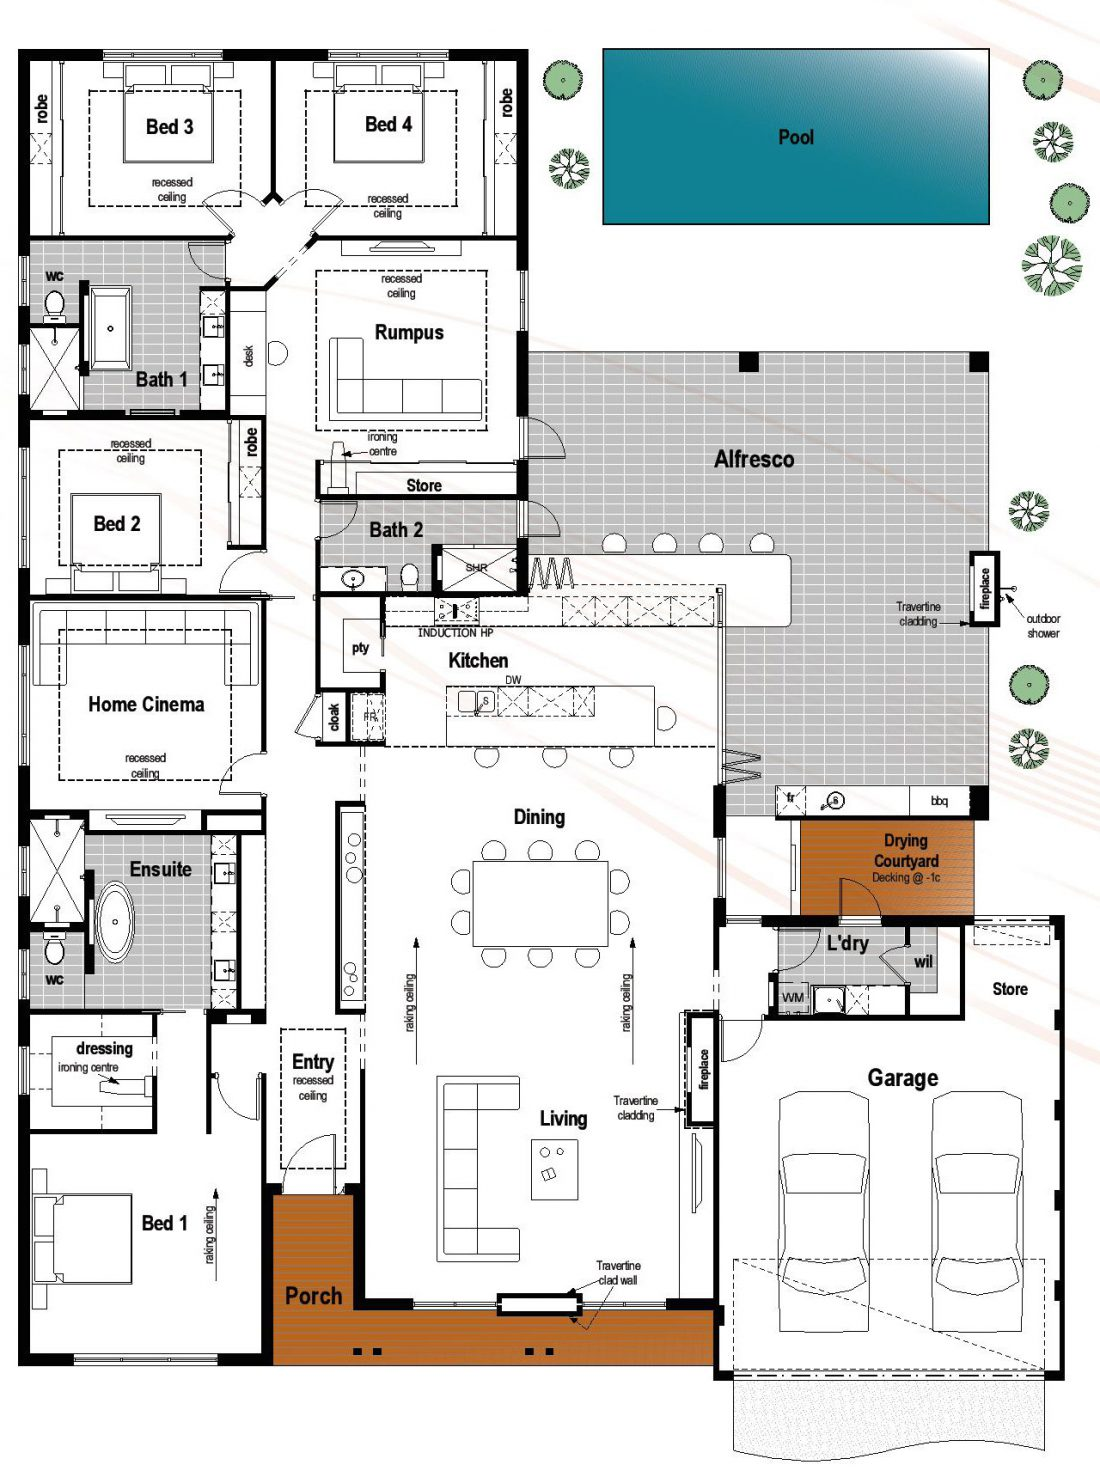 Floor plan friday 4 bedroom 3 bathroom with modern for My floor planner